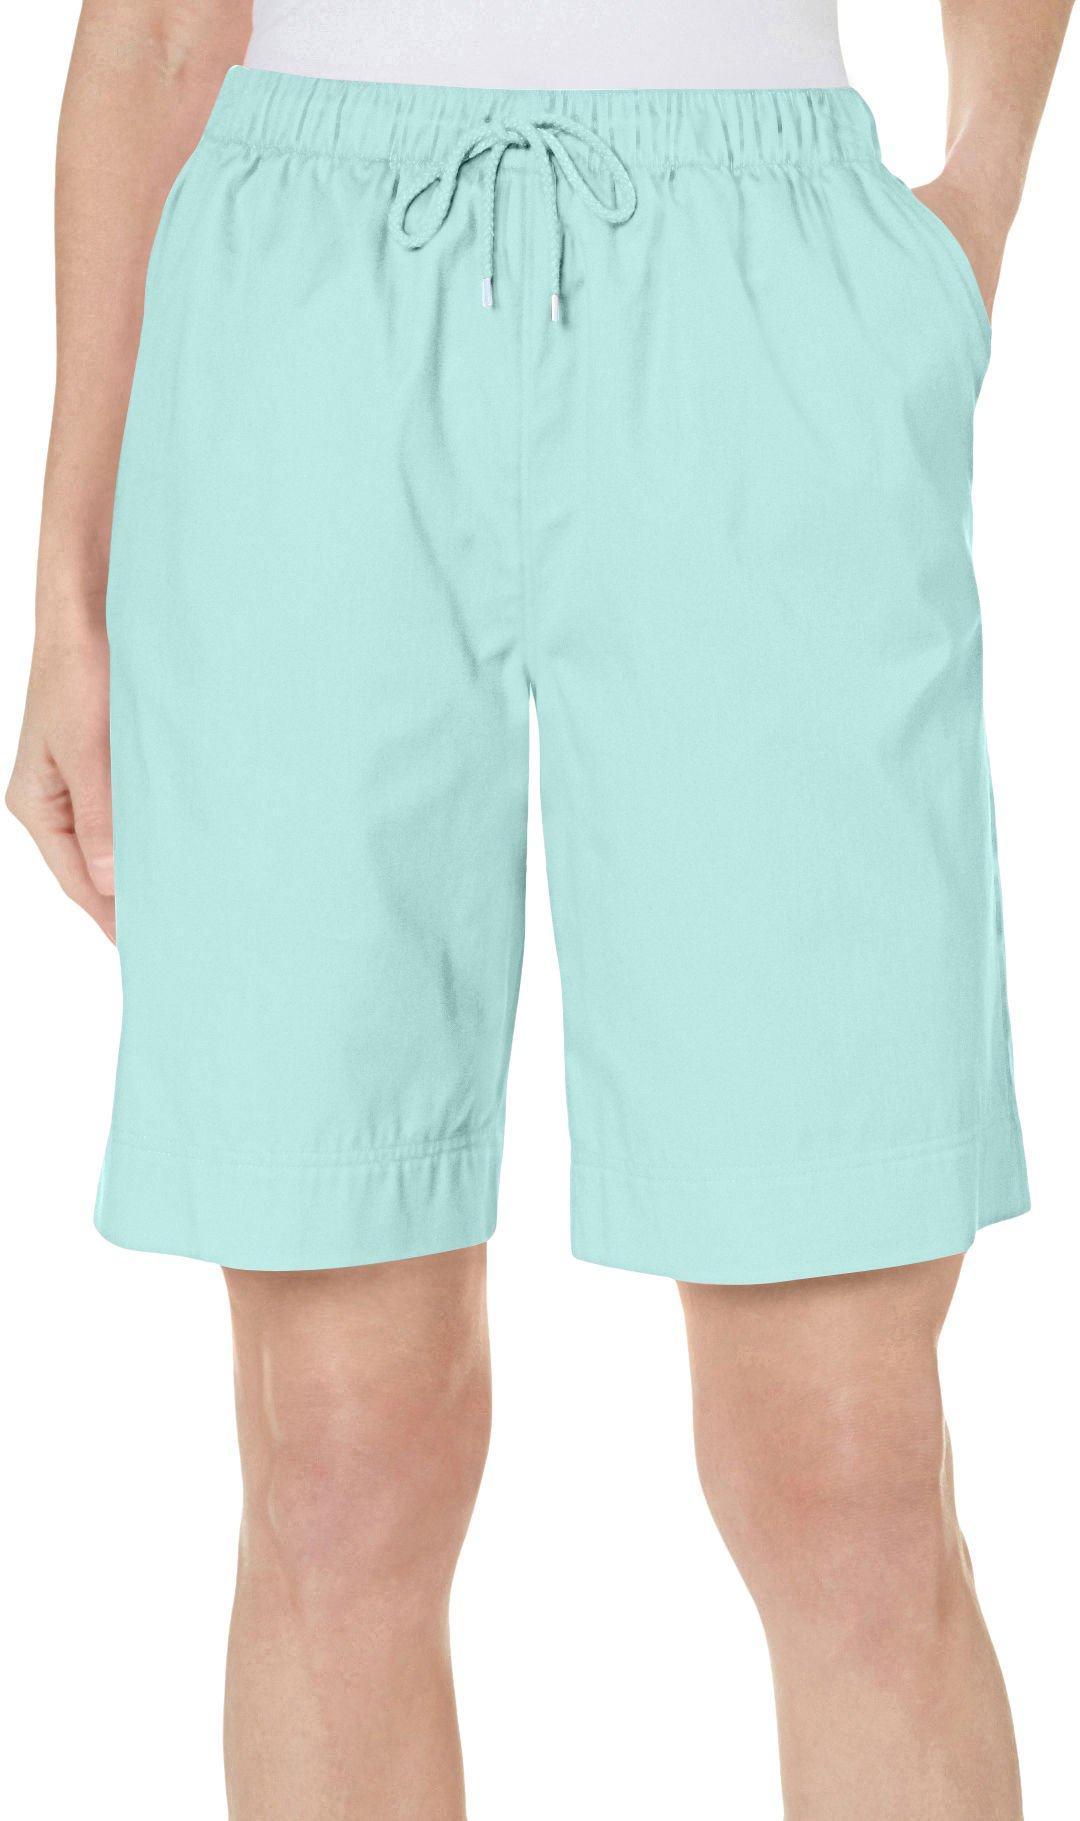 Coral Bay Womens Ocean Drive Drawstring Shorts X-Large Beach Glass